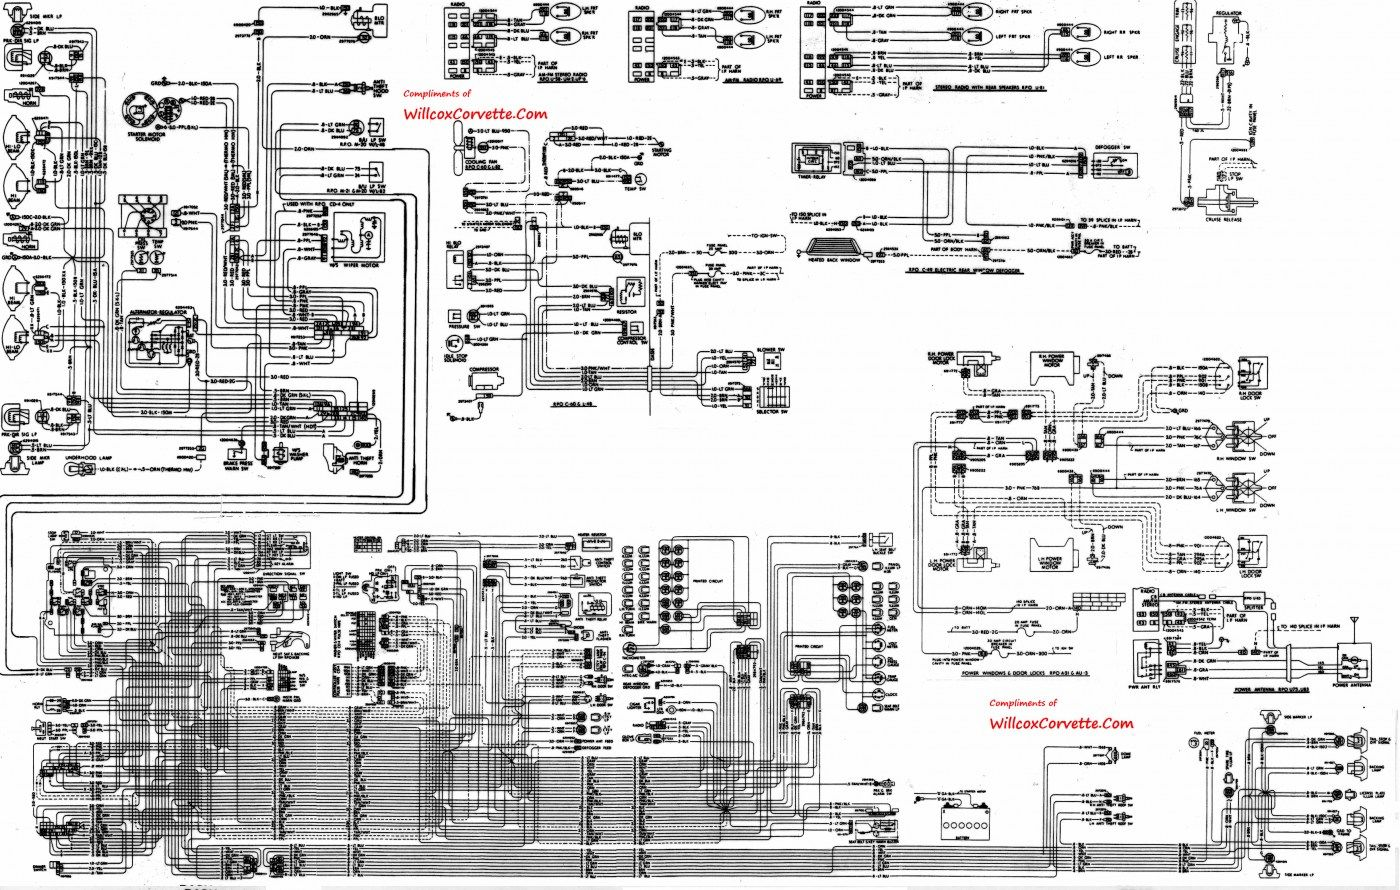 5f75ce 2005 Subaru Impreza Fuse Diagram Wiring Library Corvette Diagram Electrical Wiring Diagram